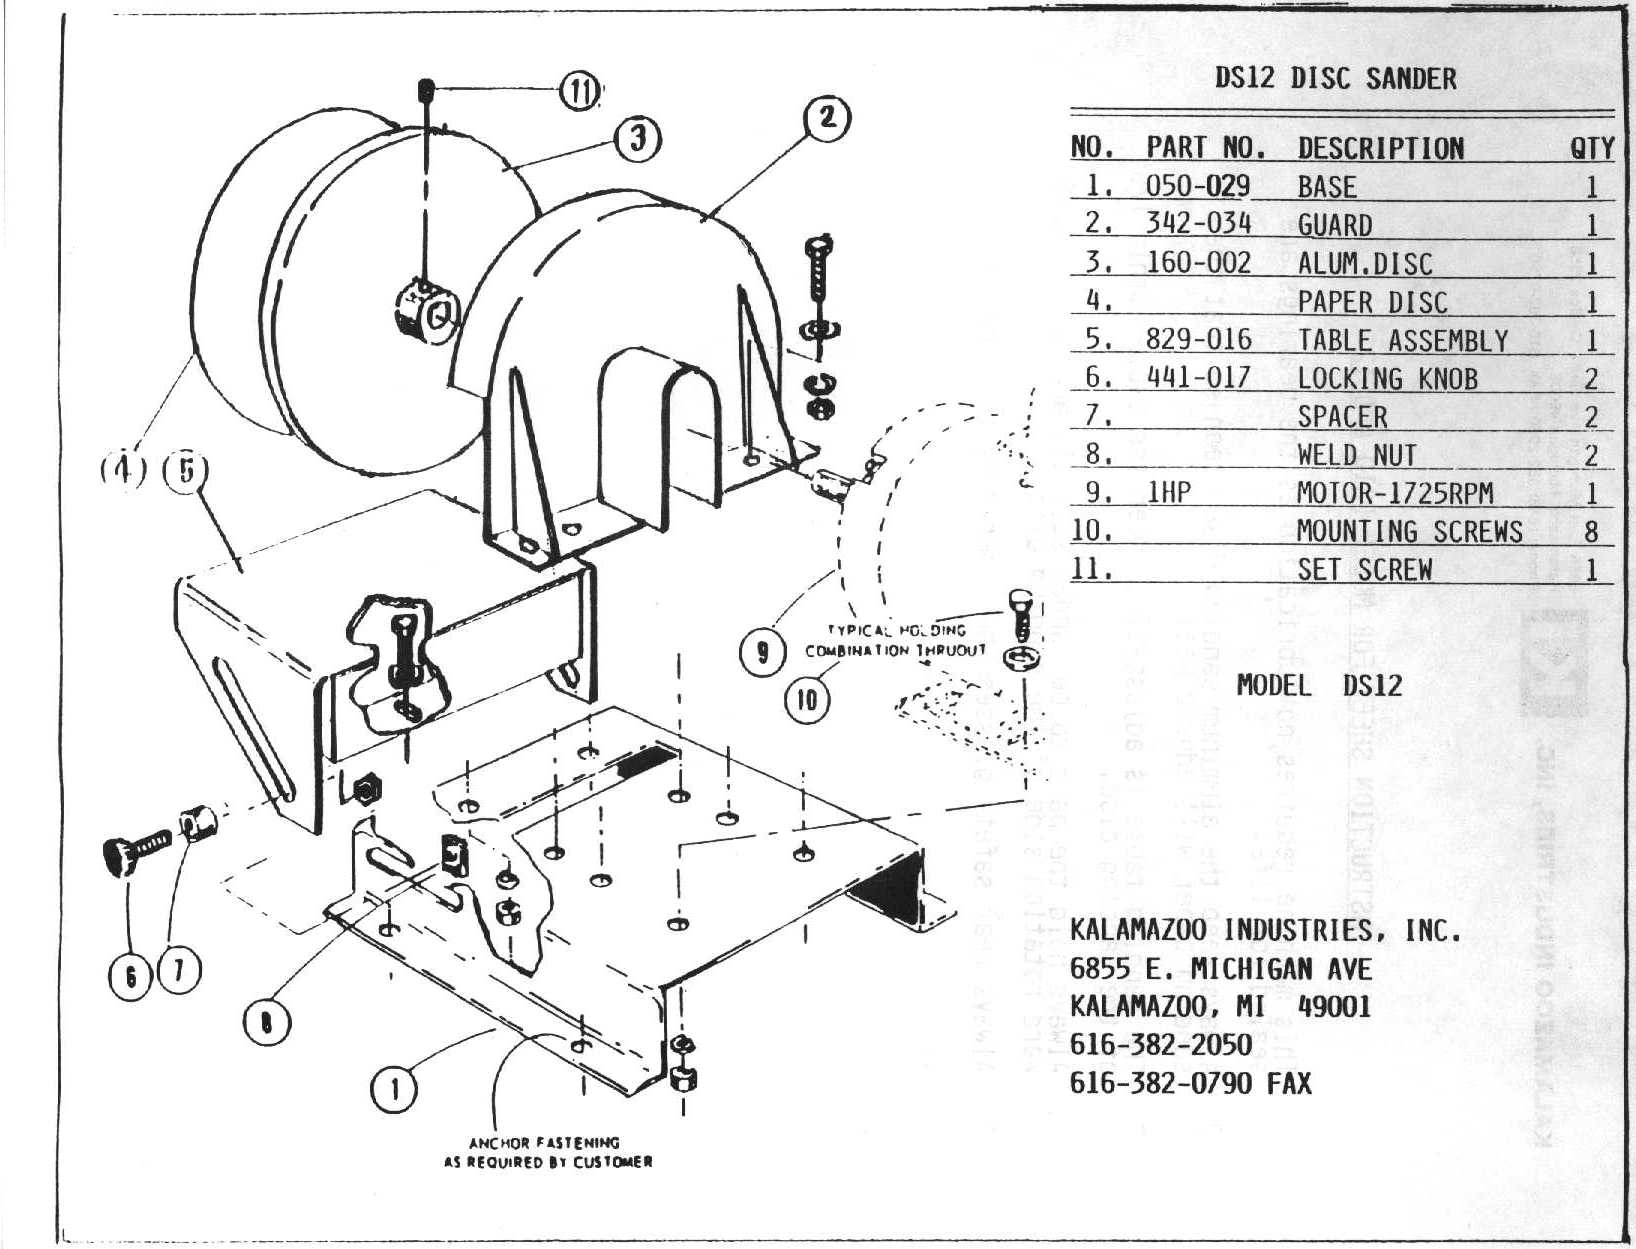 hight resolution of ds12 12 inch disc sander parts list kalamazoo industries